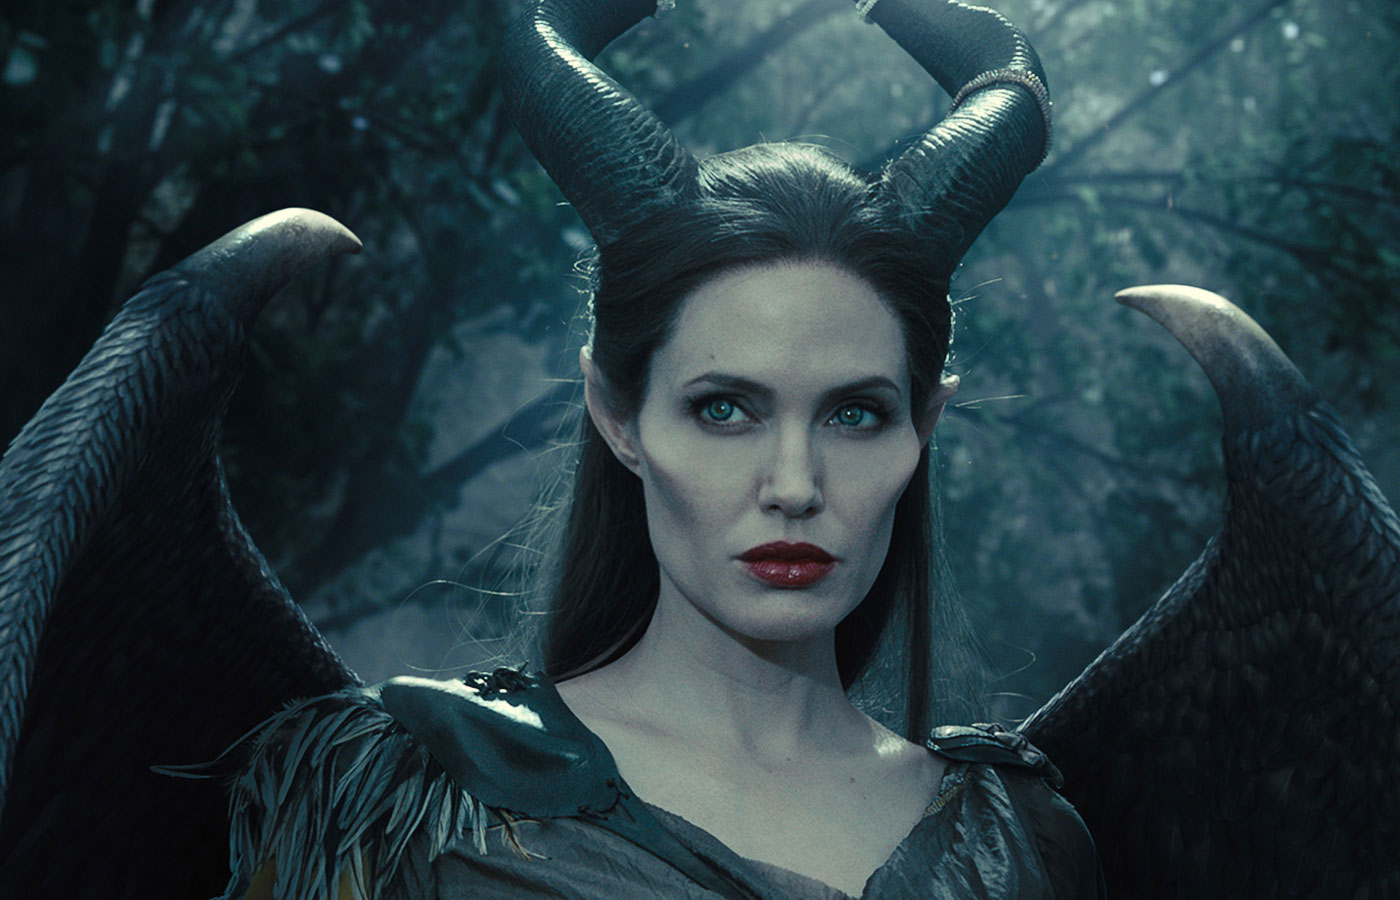 Maleficent movie 2014 hd wallpapers